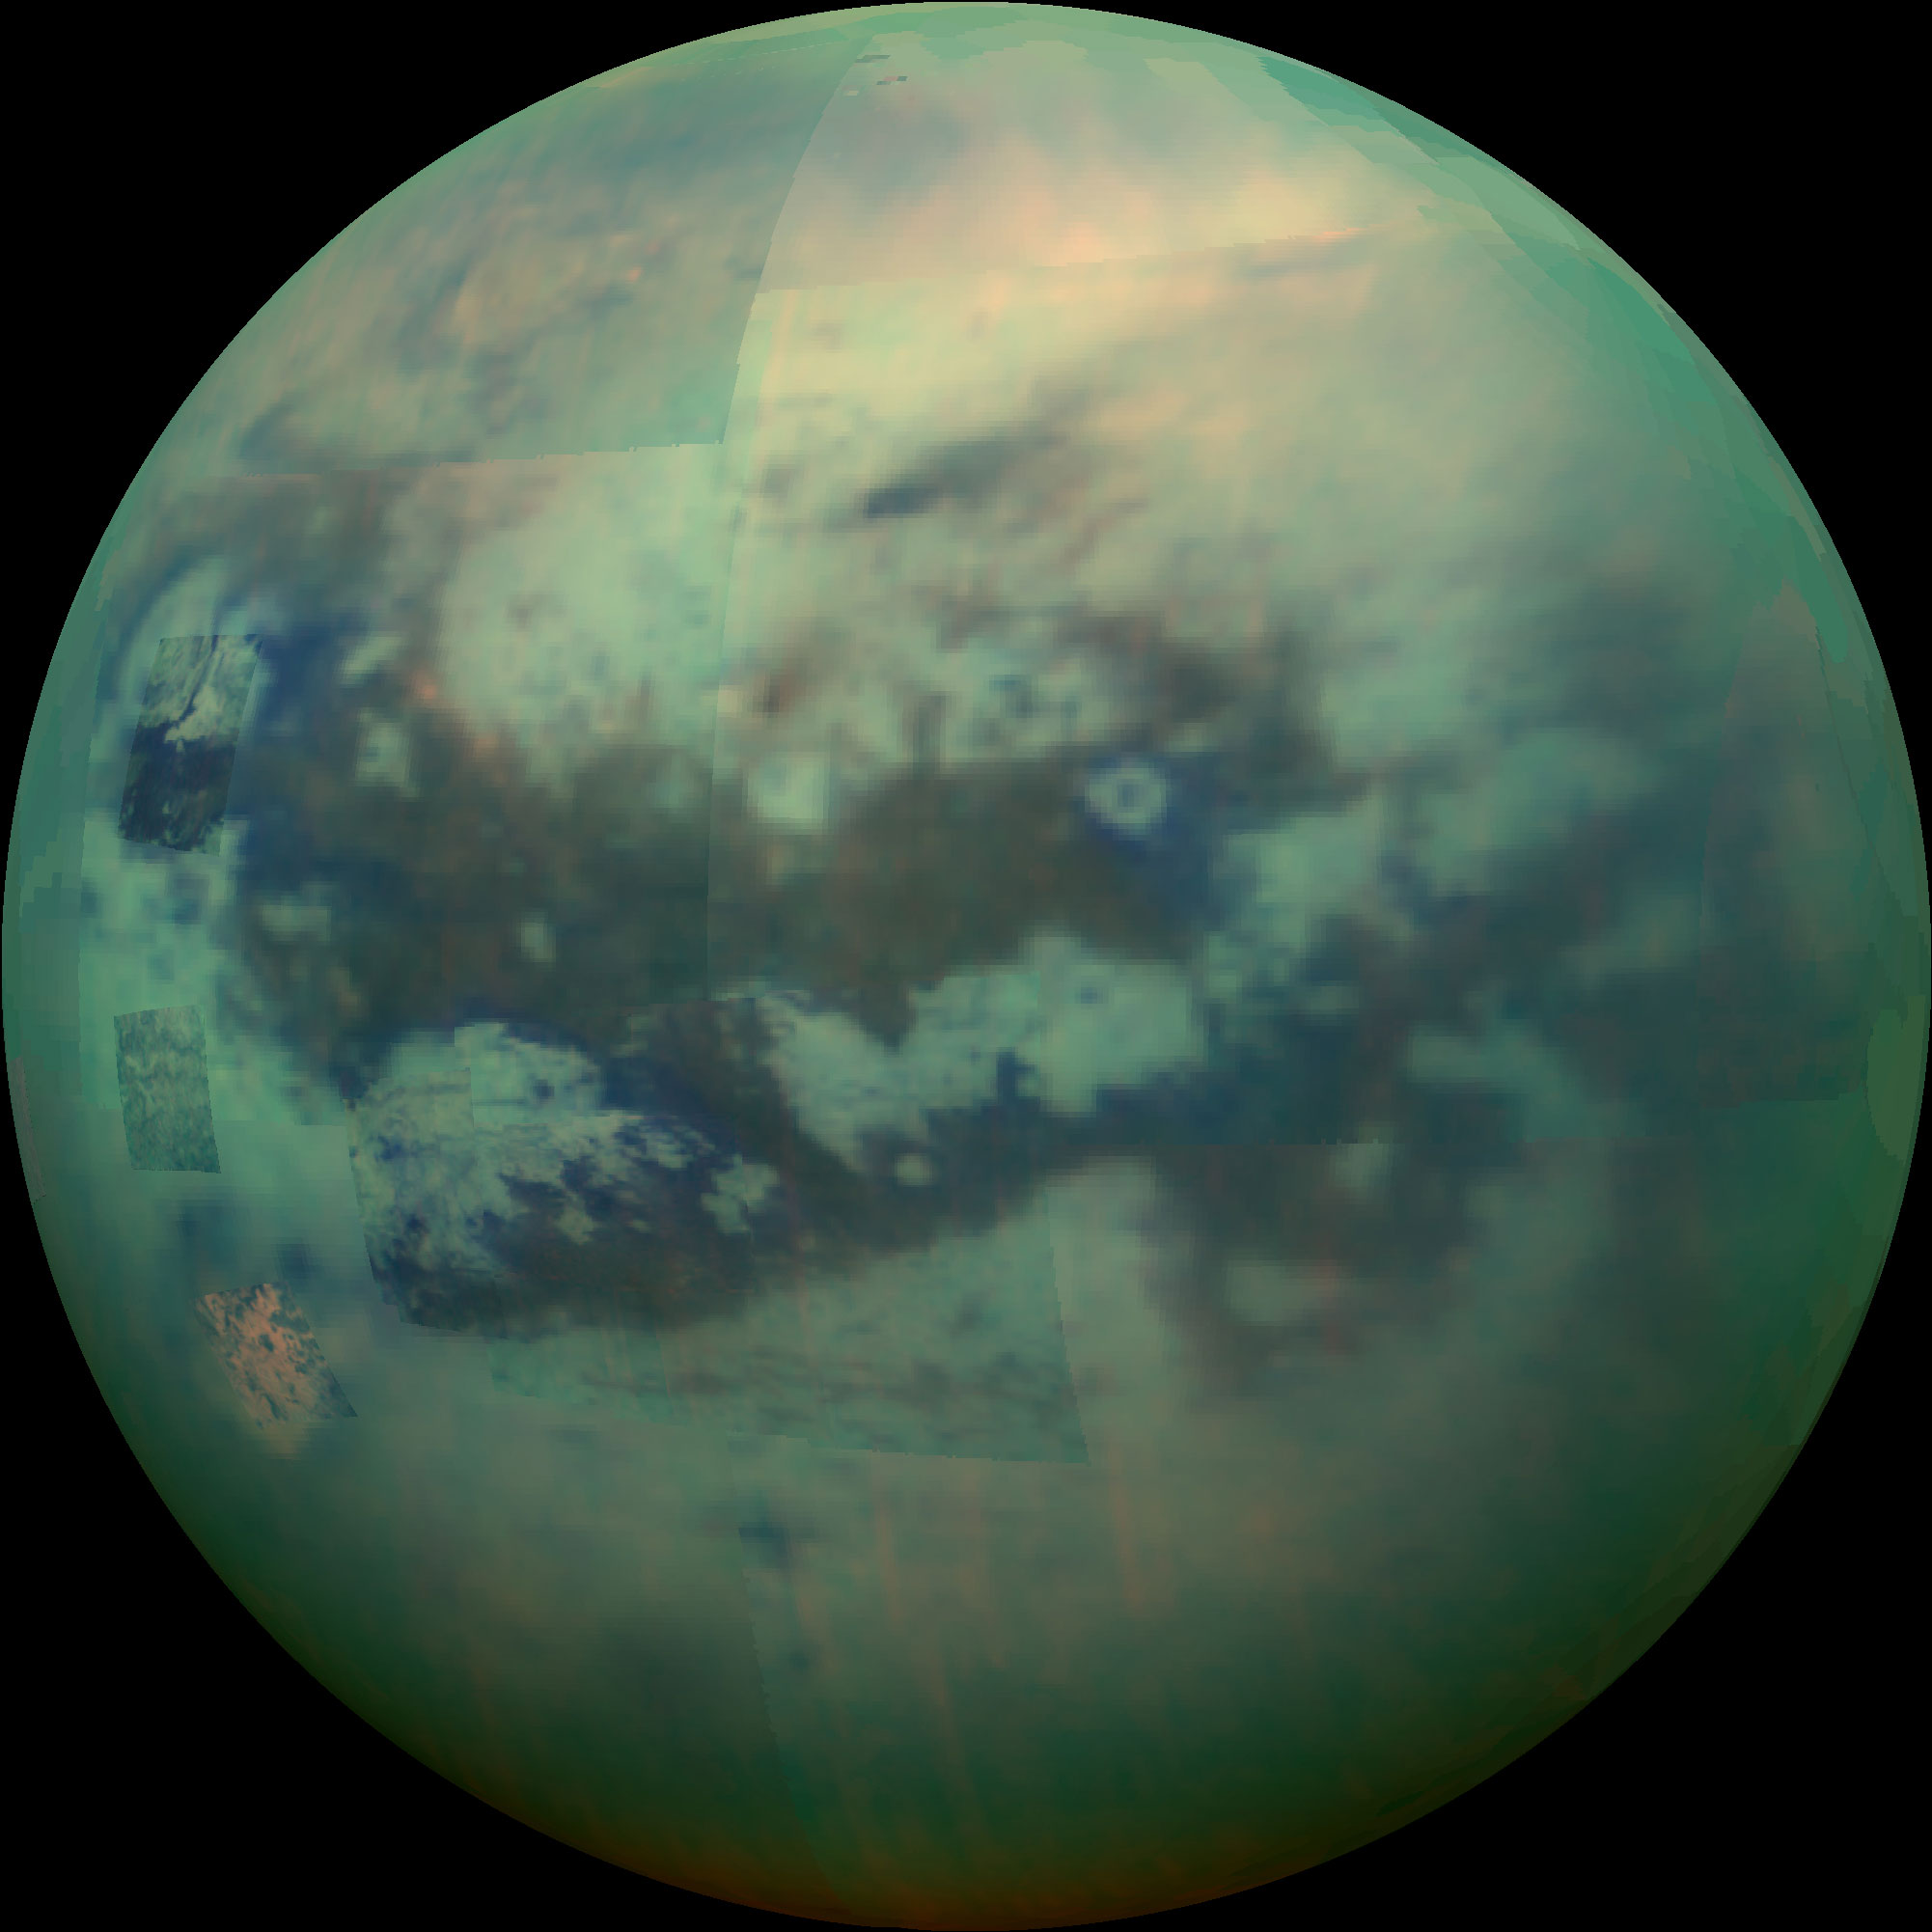 Titan-in-a-Glass Experiments Hint at Mineral Makeup of Saturn's Largest Moon